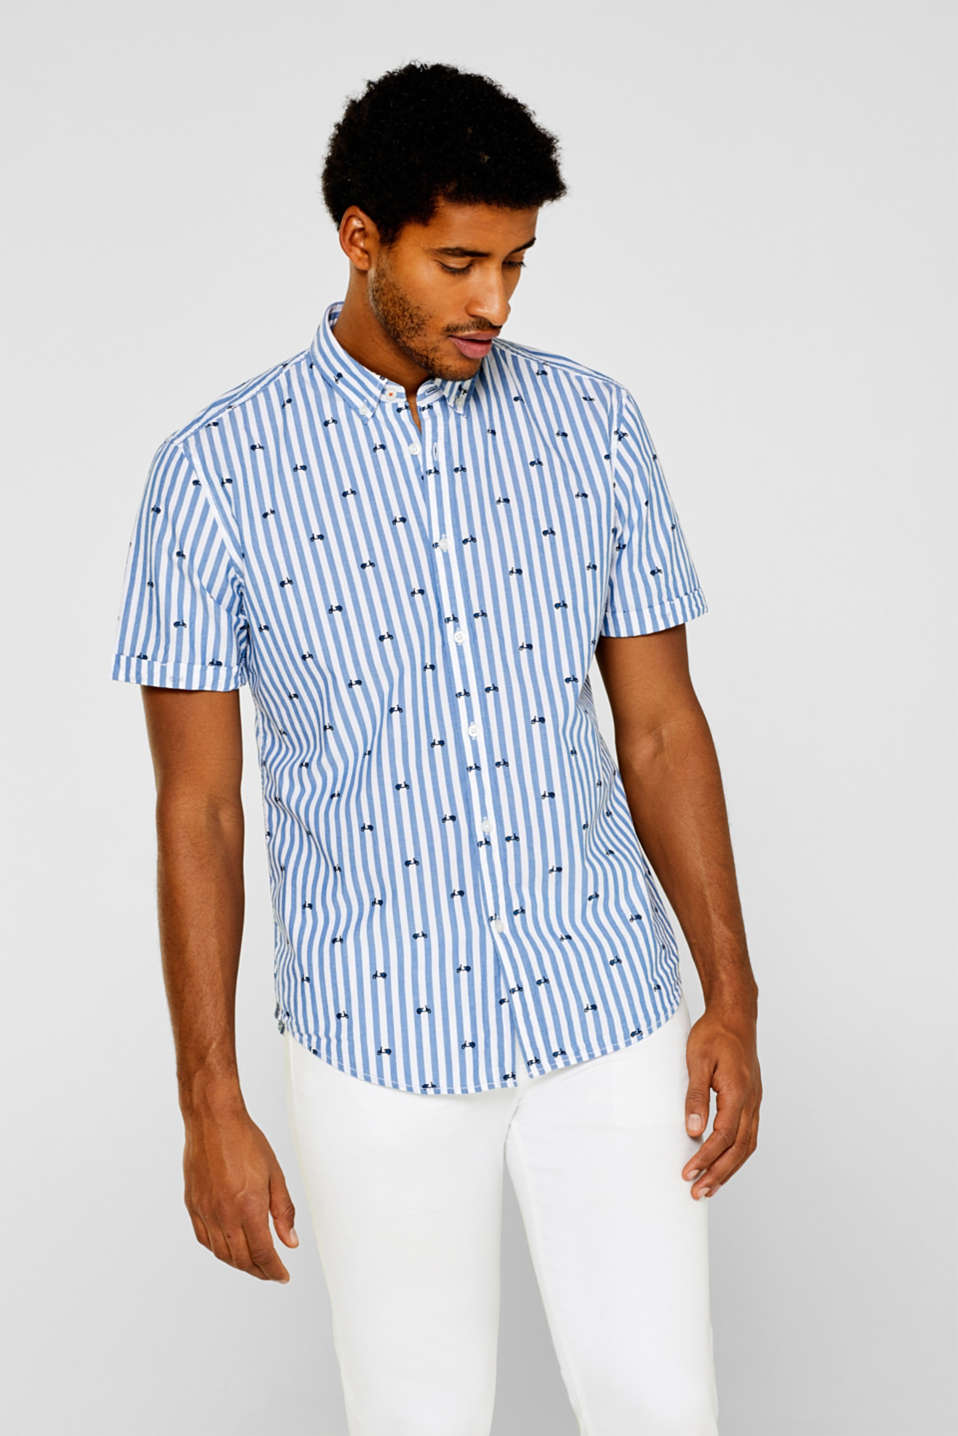 edc - Striped short sleeve shirt made of 100% cotton